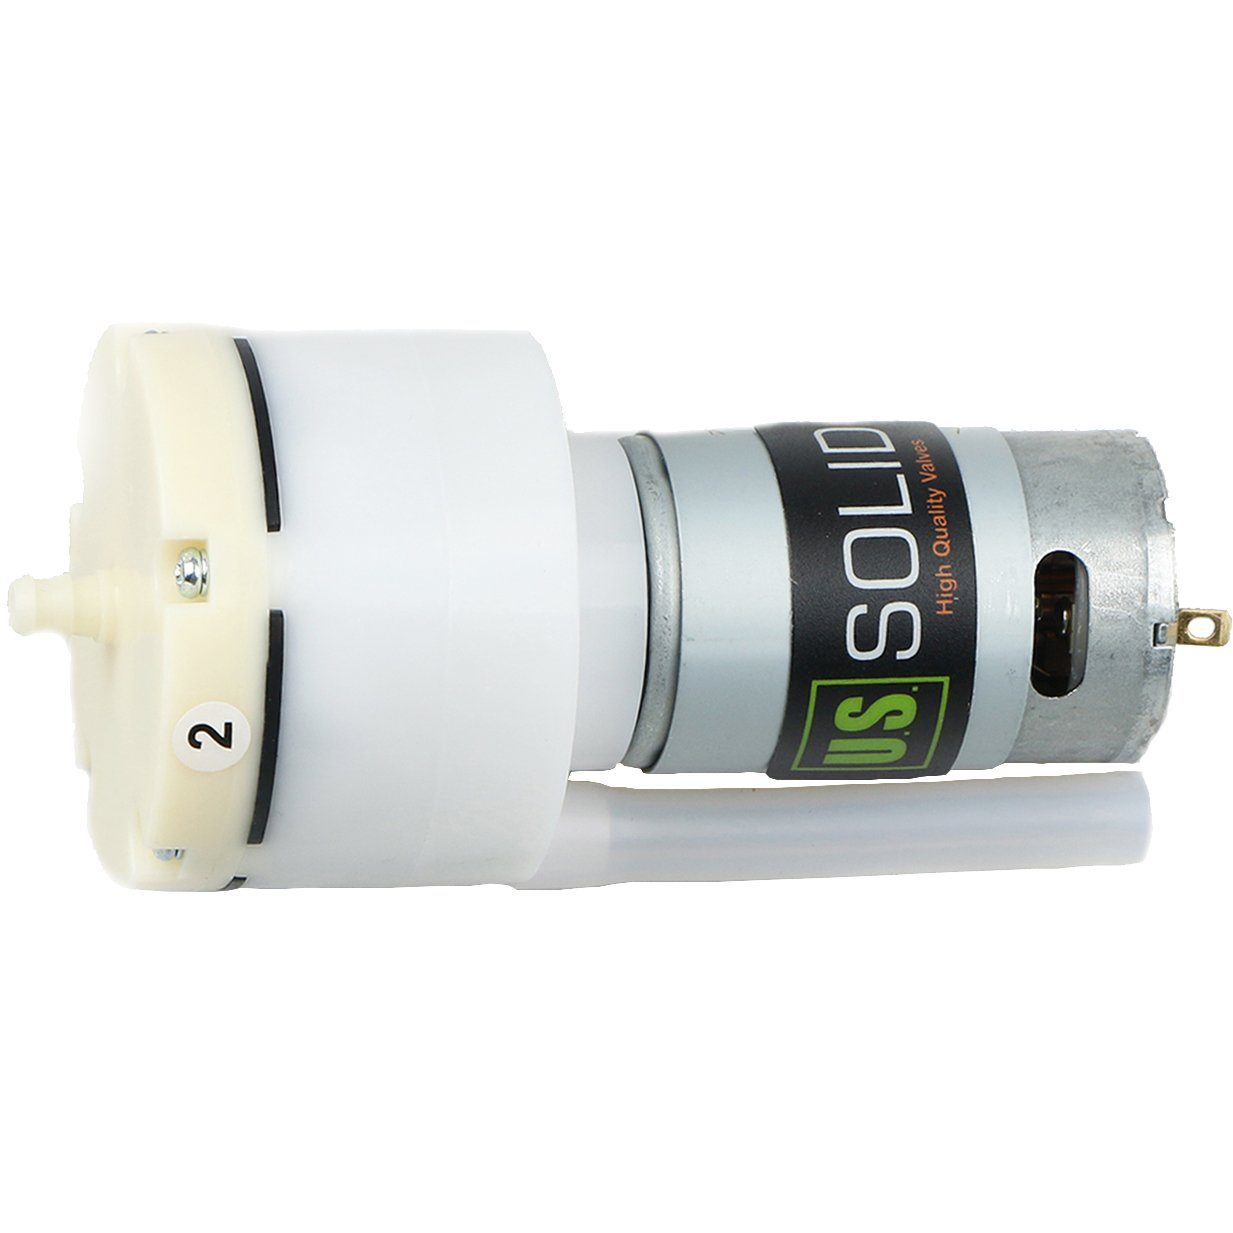 U.S. Solid Mini Air Pump- 24V DC Pump for Home Aquariums, Massage Chairs, Breast Milk Pumps, Sphygmomanometers, Essential Oil Diffusers, and More. Great Replacement Part for the DIY Person.